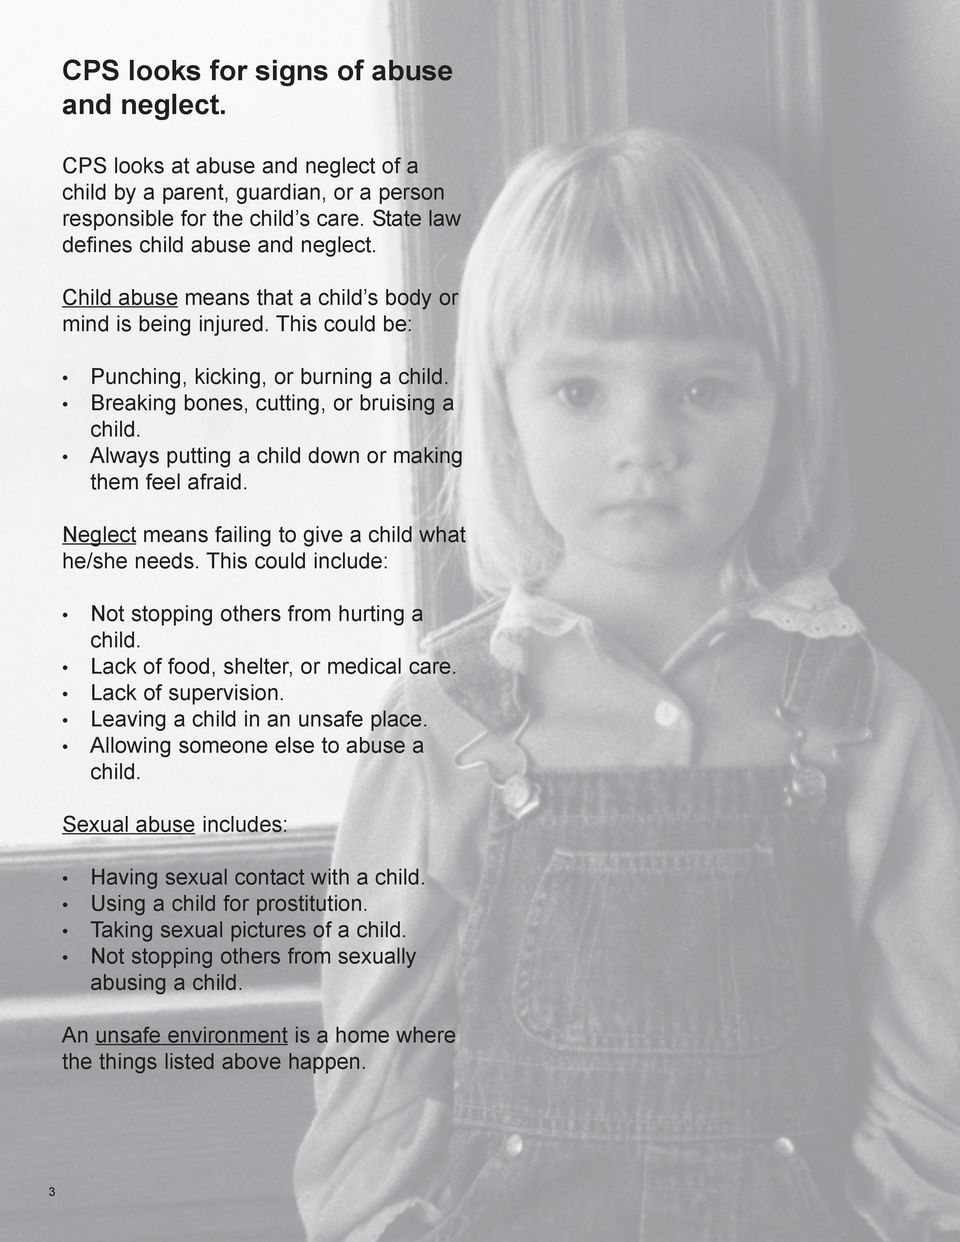 Always putting a child down or making them feel afraid. Neglect means failing to give a child what he/she needs. This could include: Not stopping others from hurting a child.